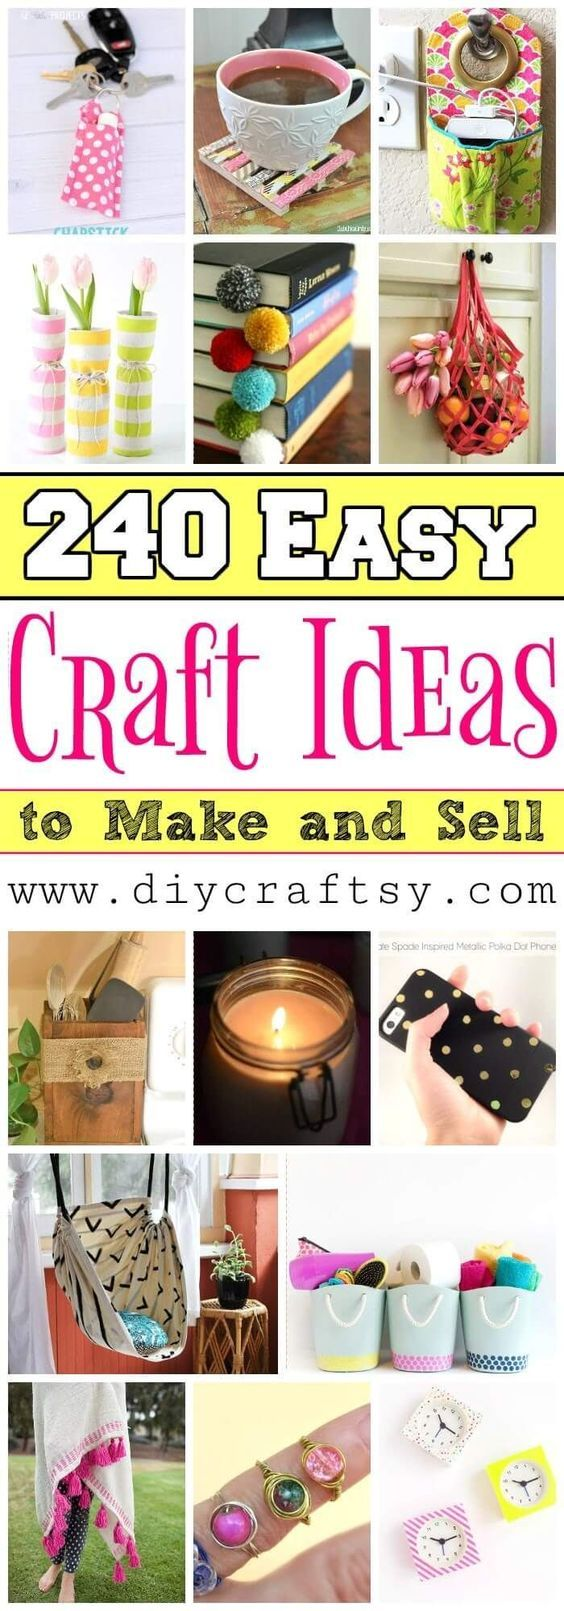 240 Easy Crafts to Make and Sell – DIY Craft Ideas -   18 diy projects To Sell ideas